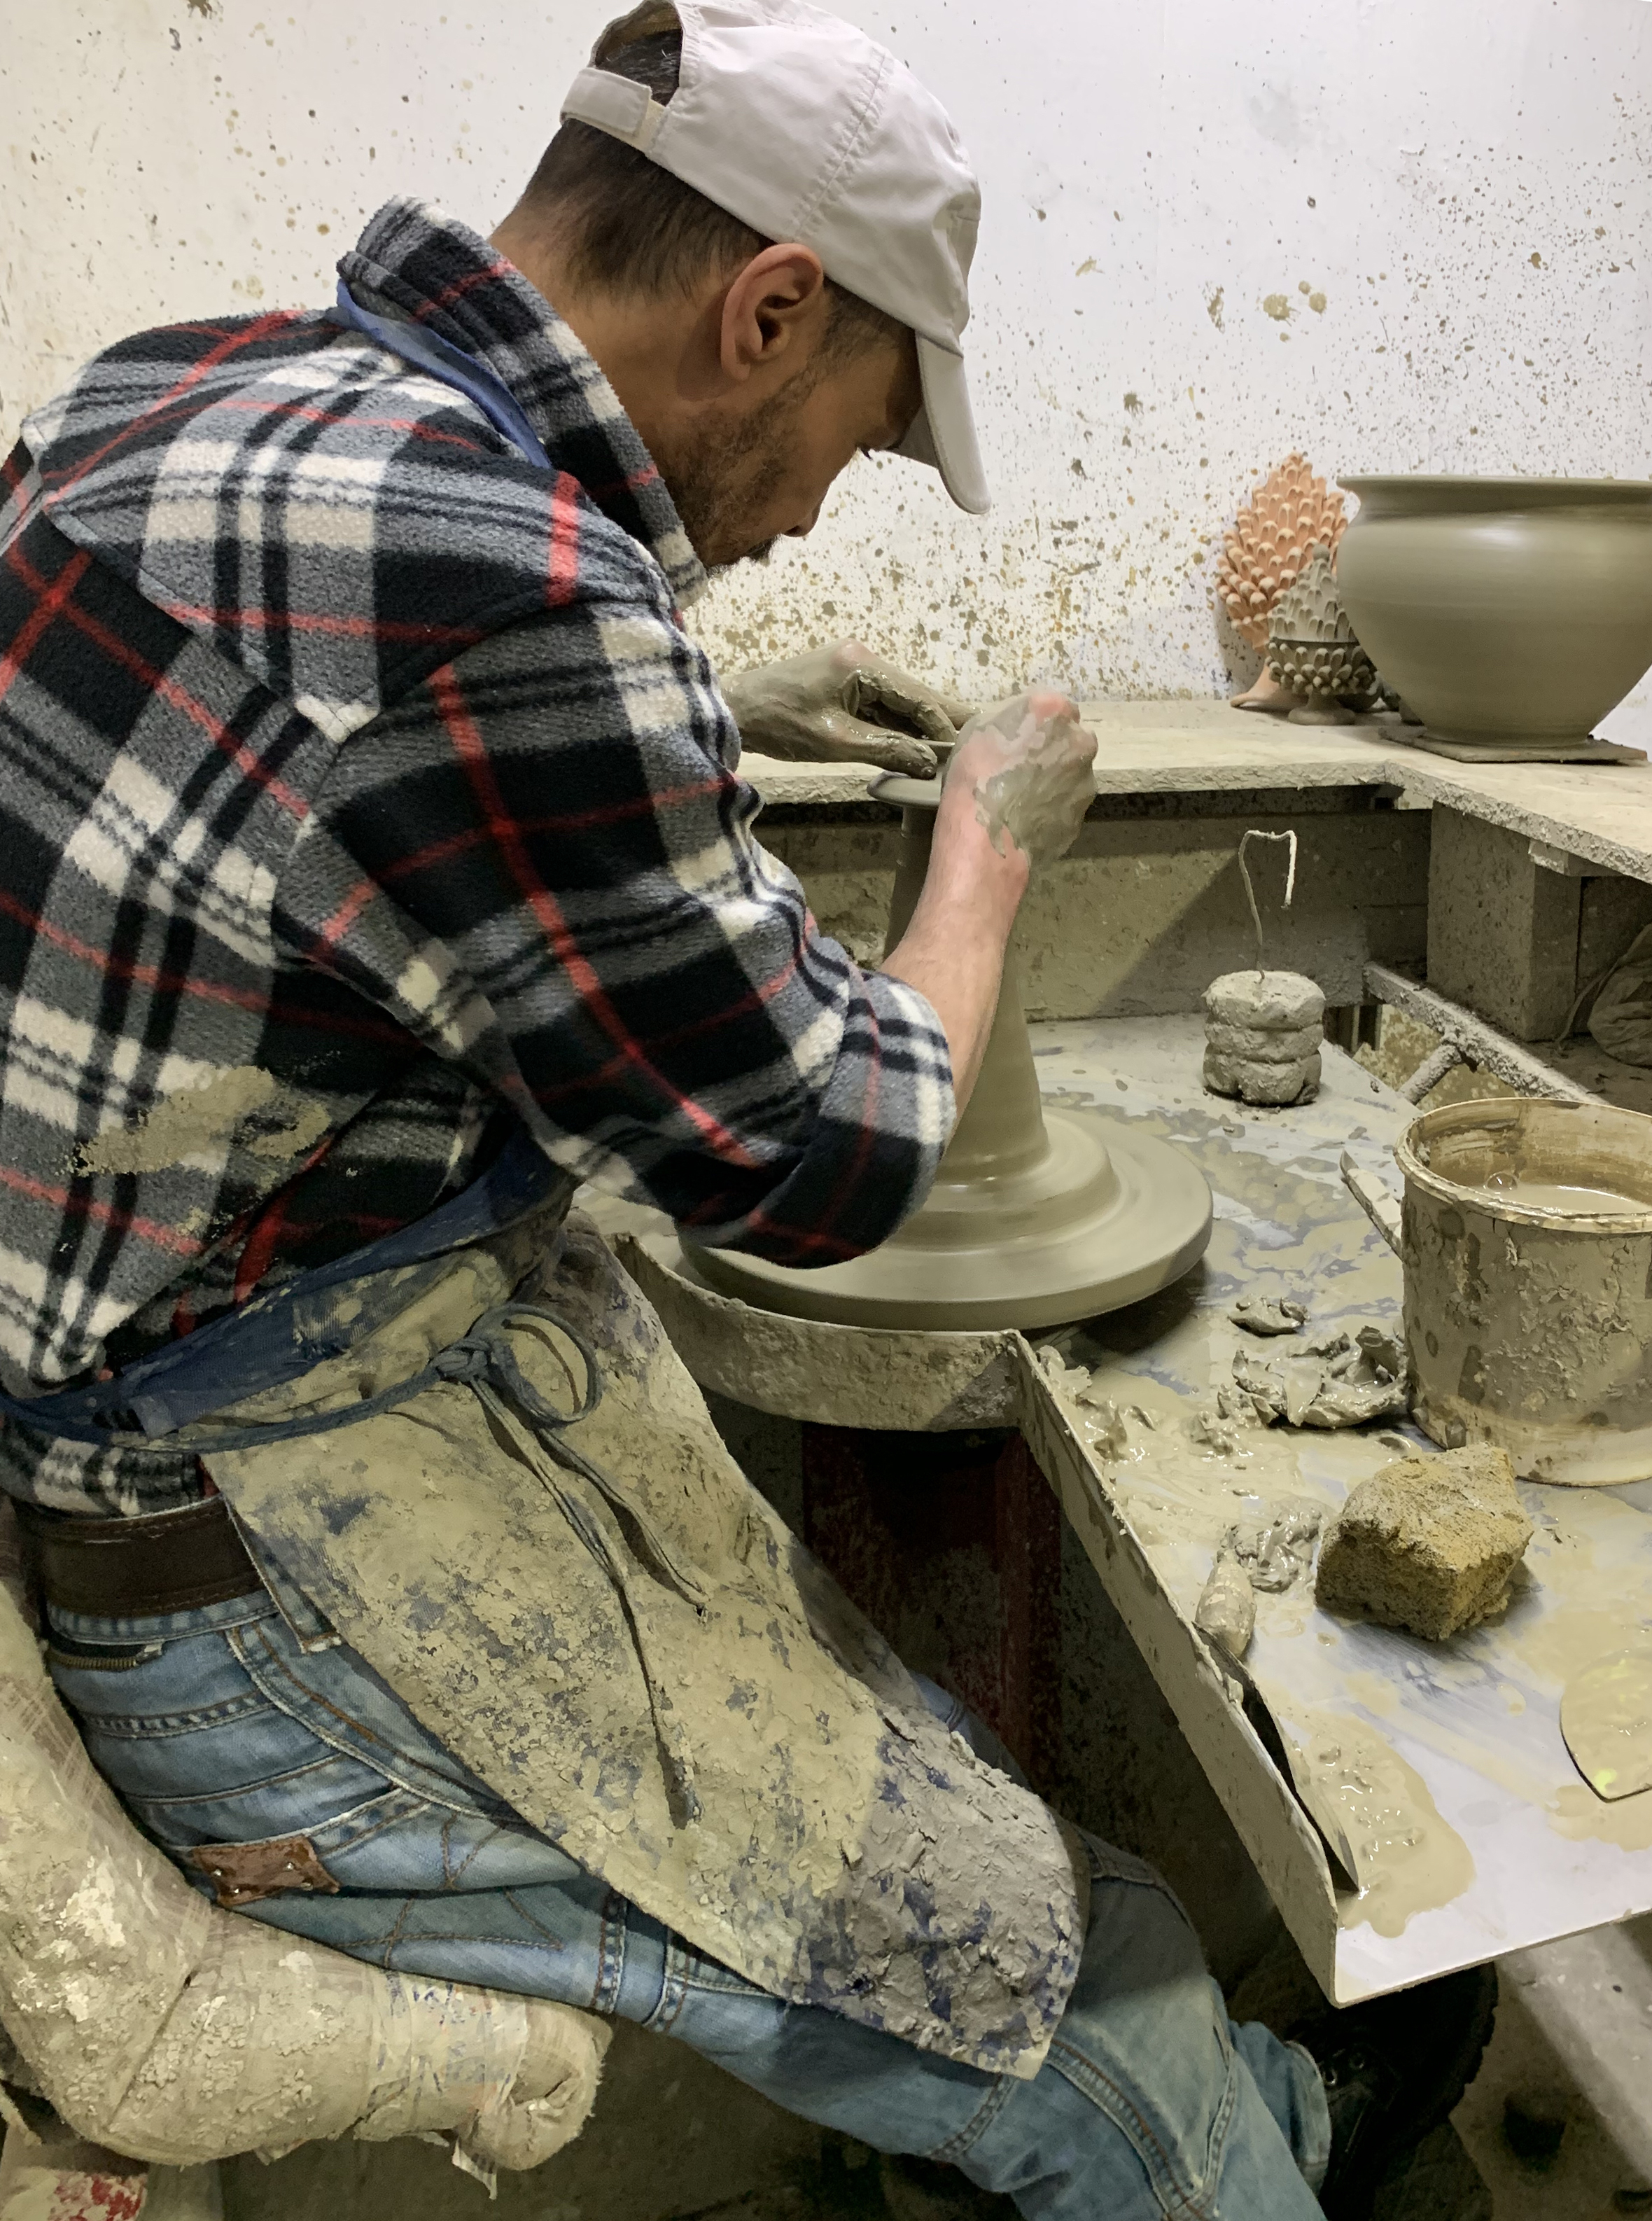 A rainy day trip to visit a professional potter.